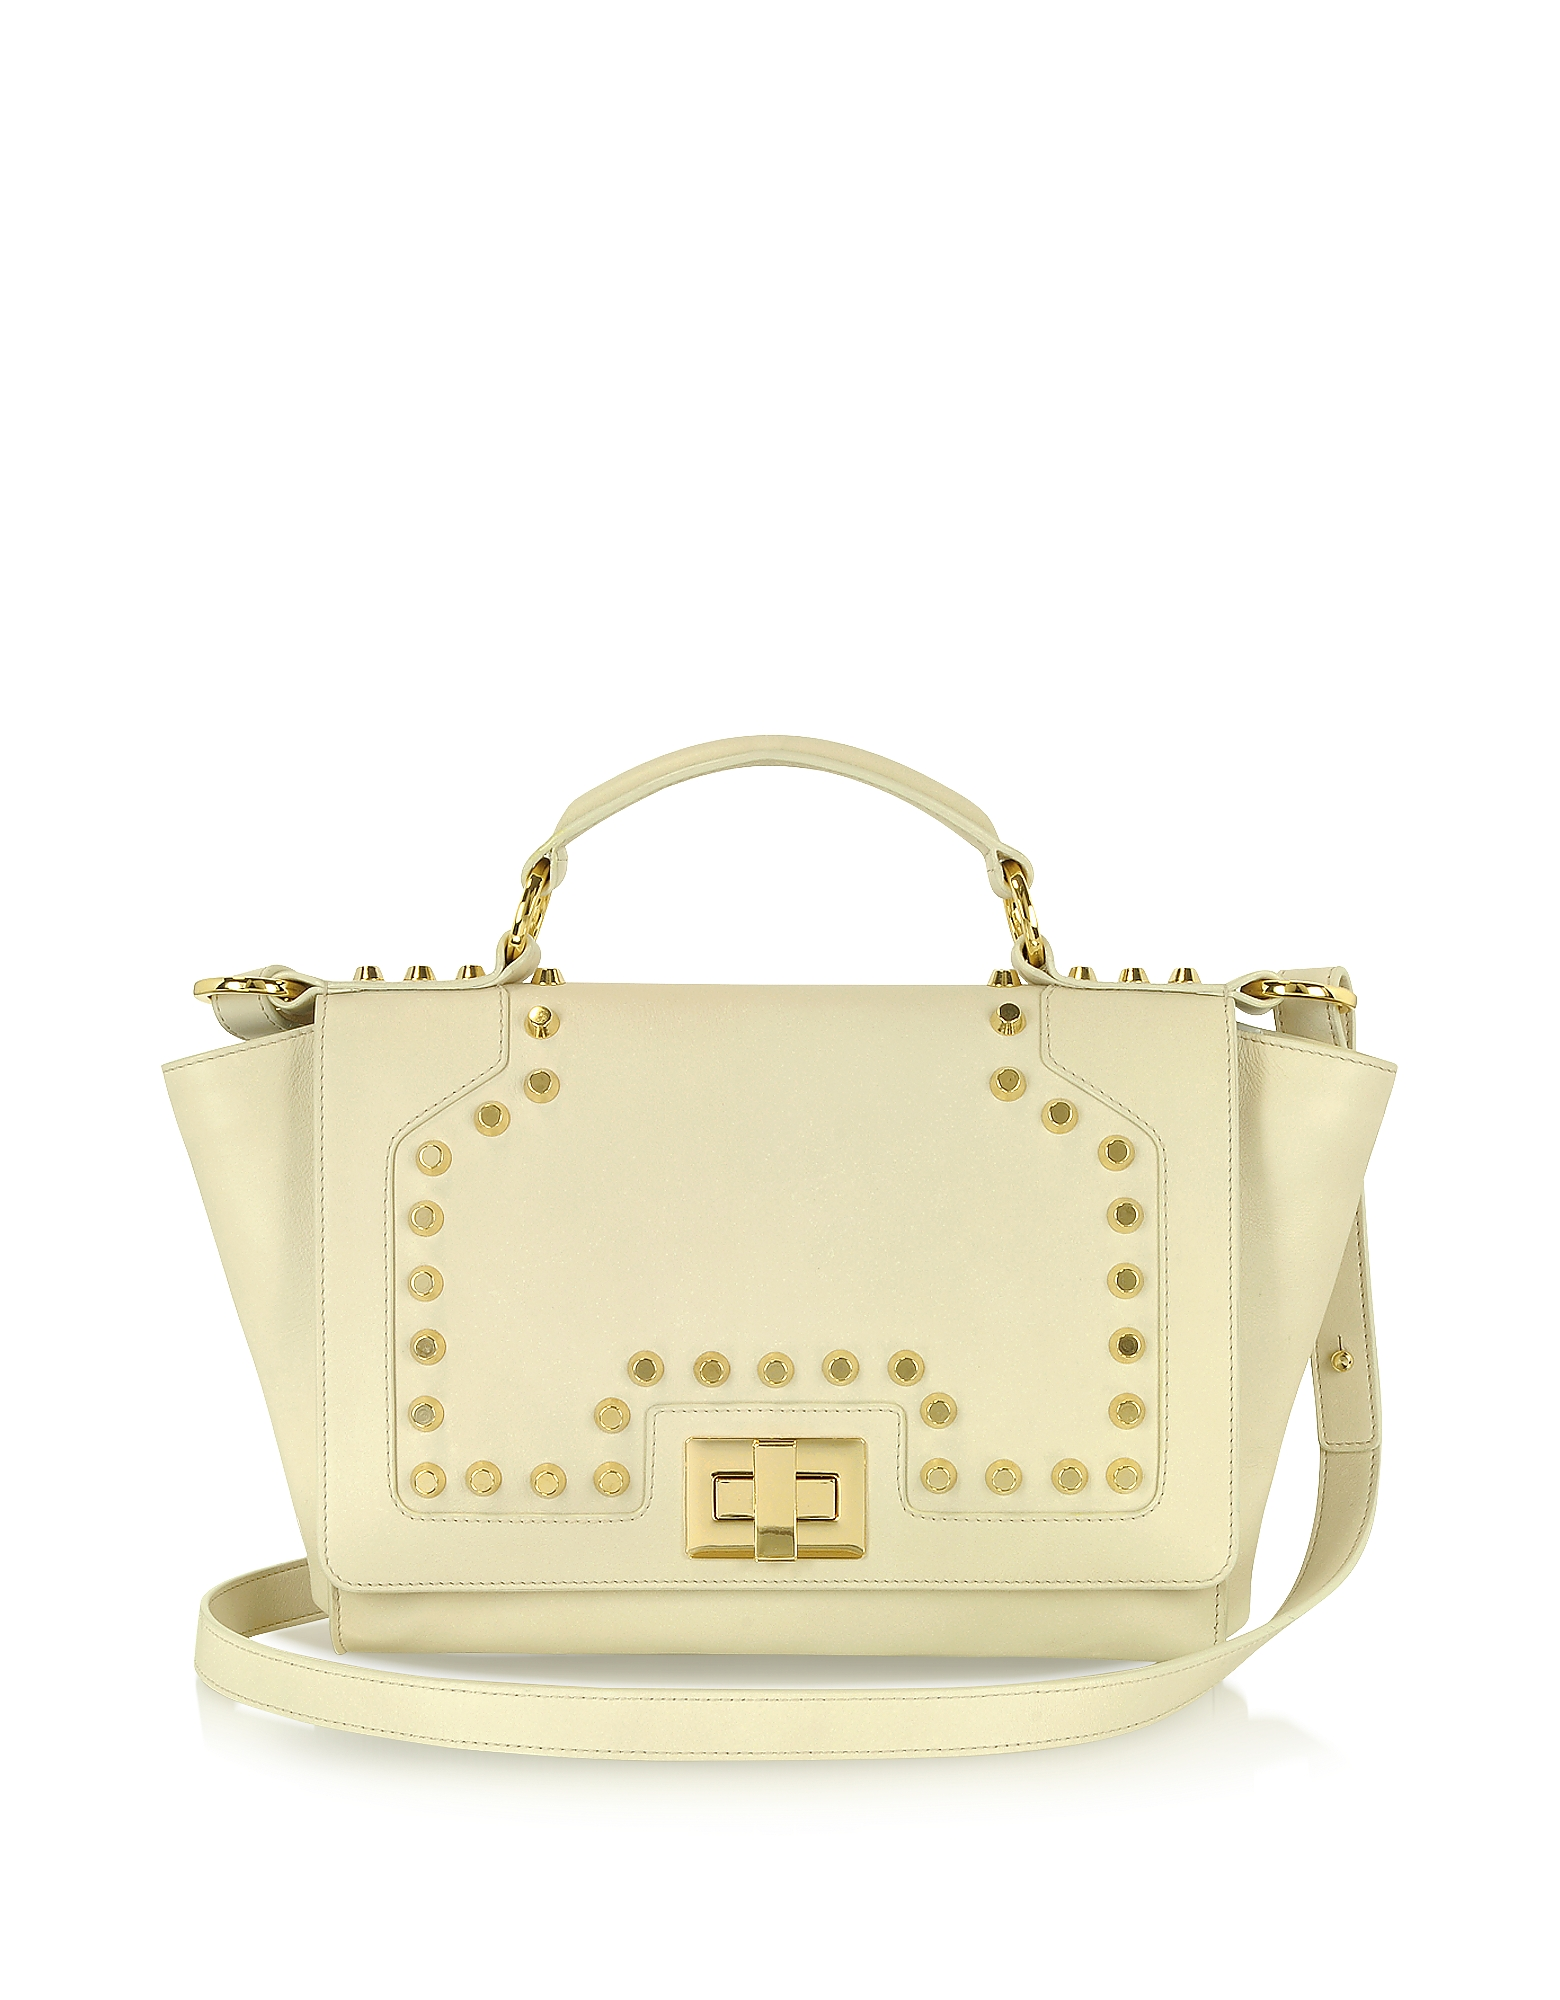 Leonardo Delfuoco Handbags, Studded Beige Leather iPad Bag